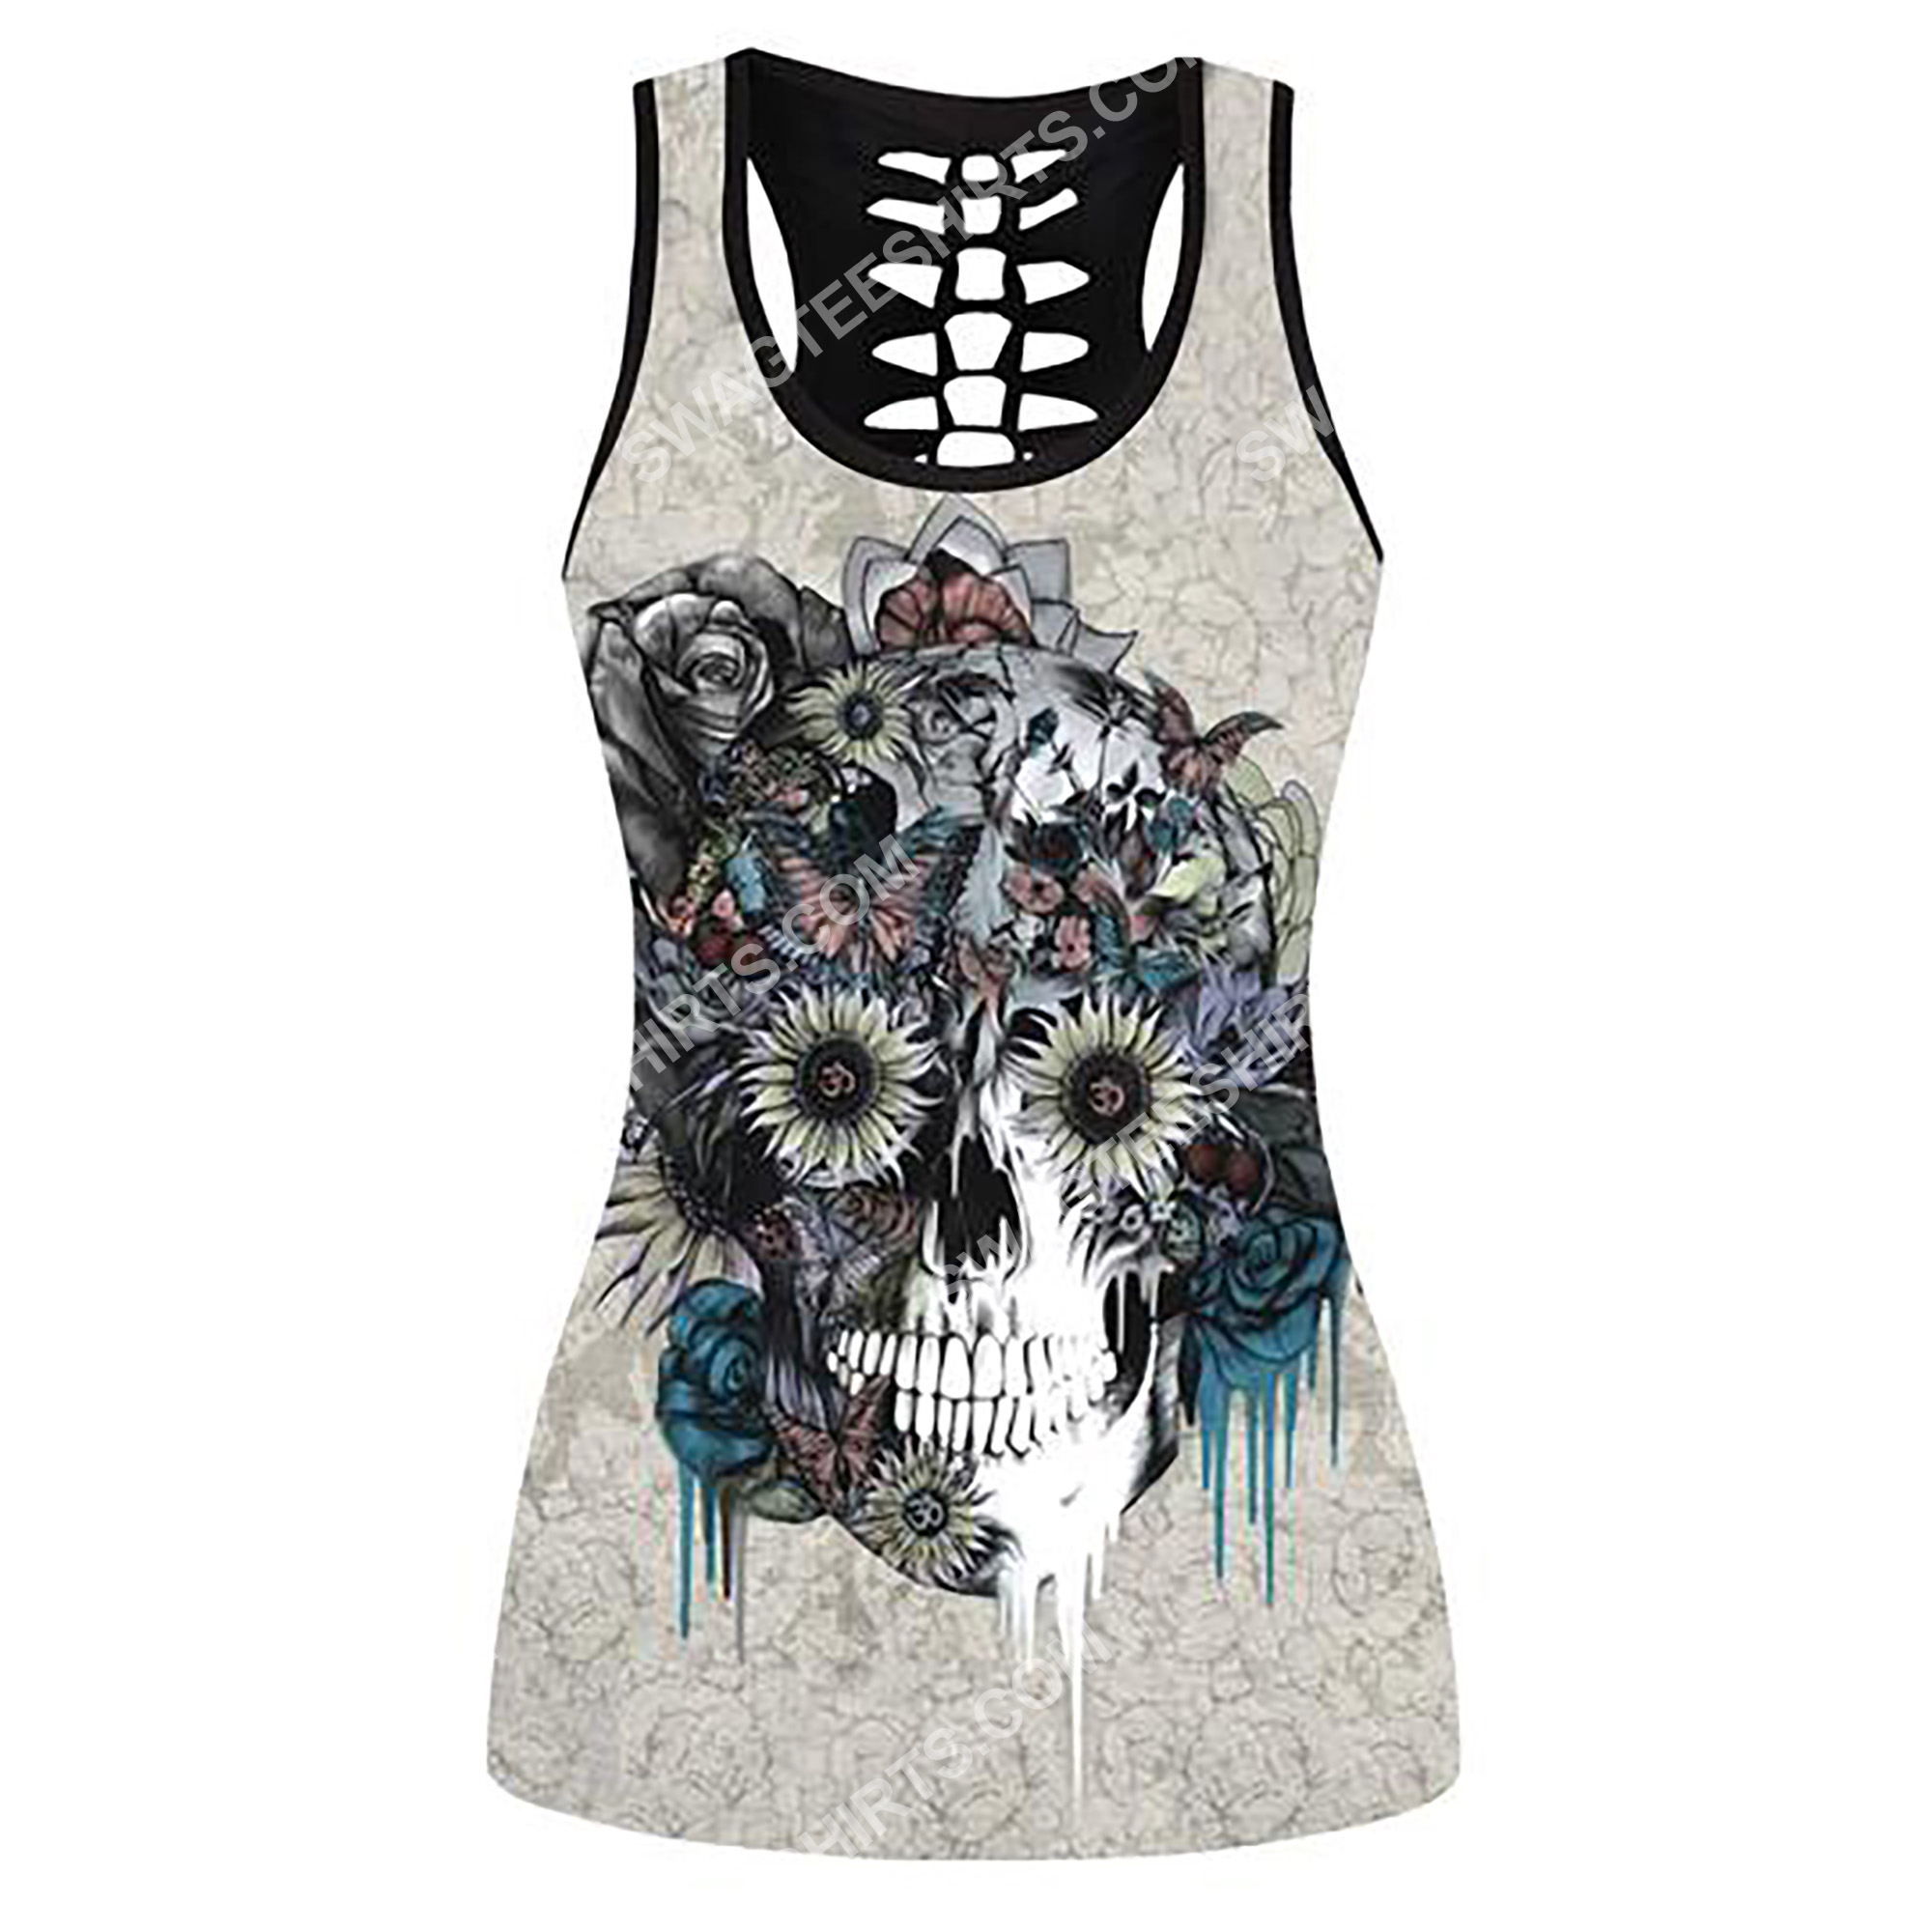 flower and skull full printing hollow tank top 2(1) - Copy